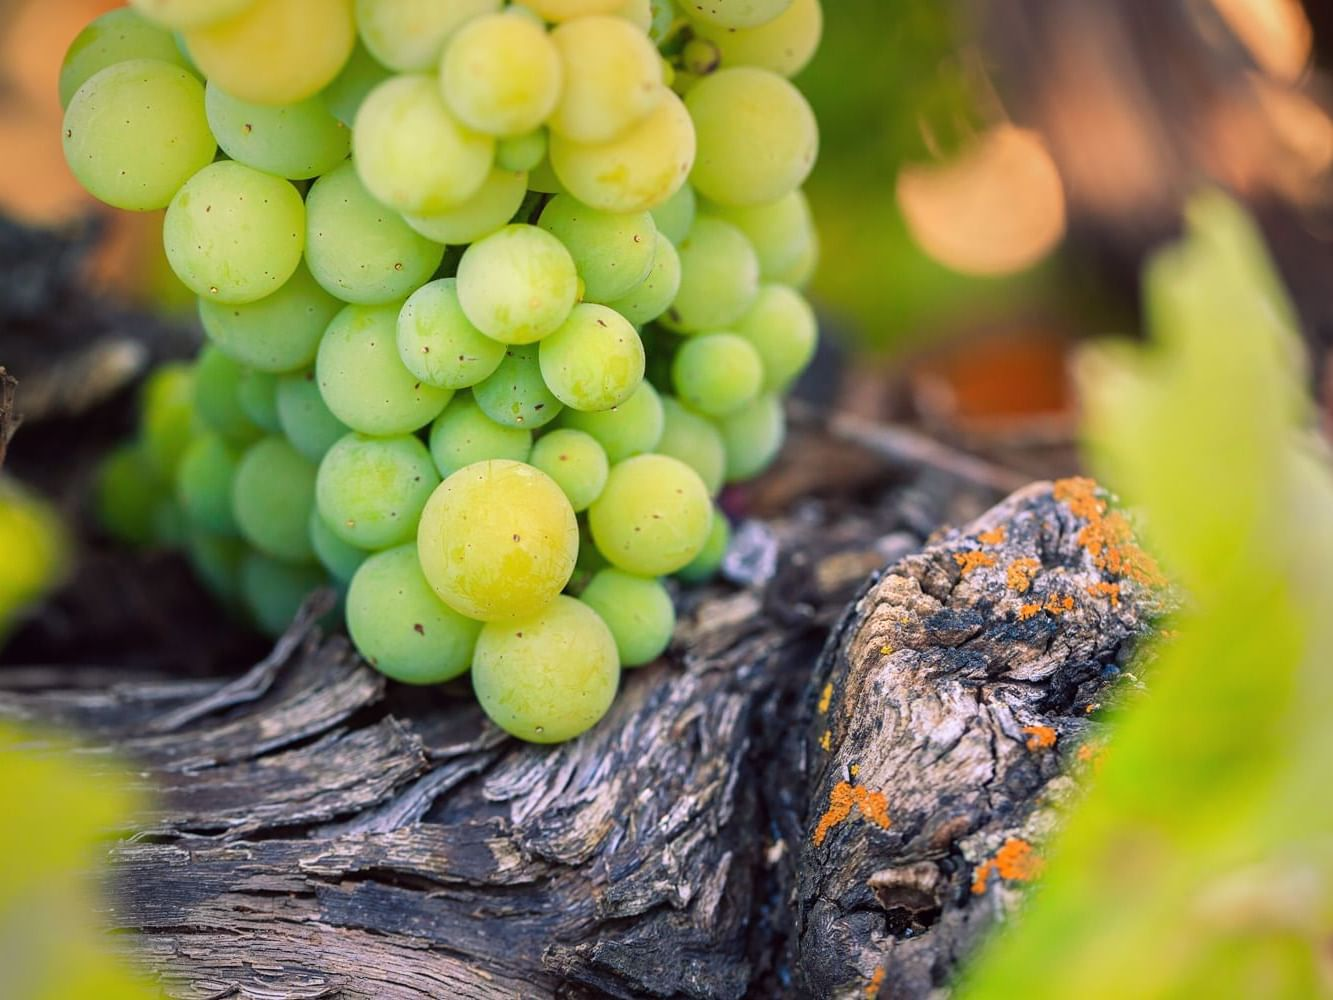 Green grapes hanging from vine